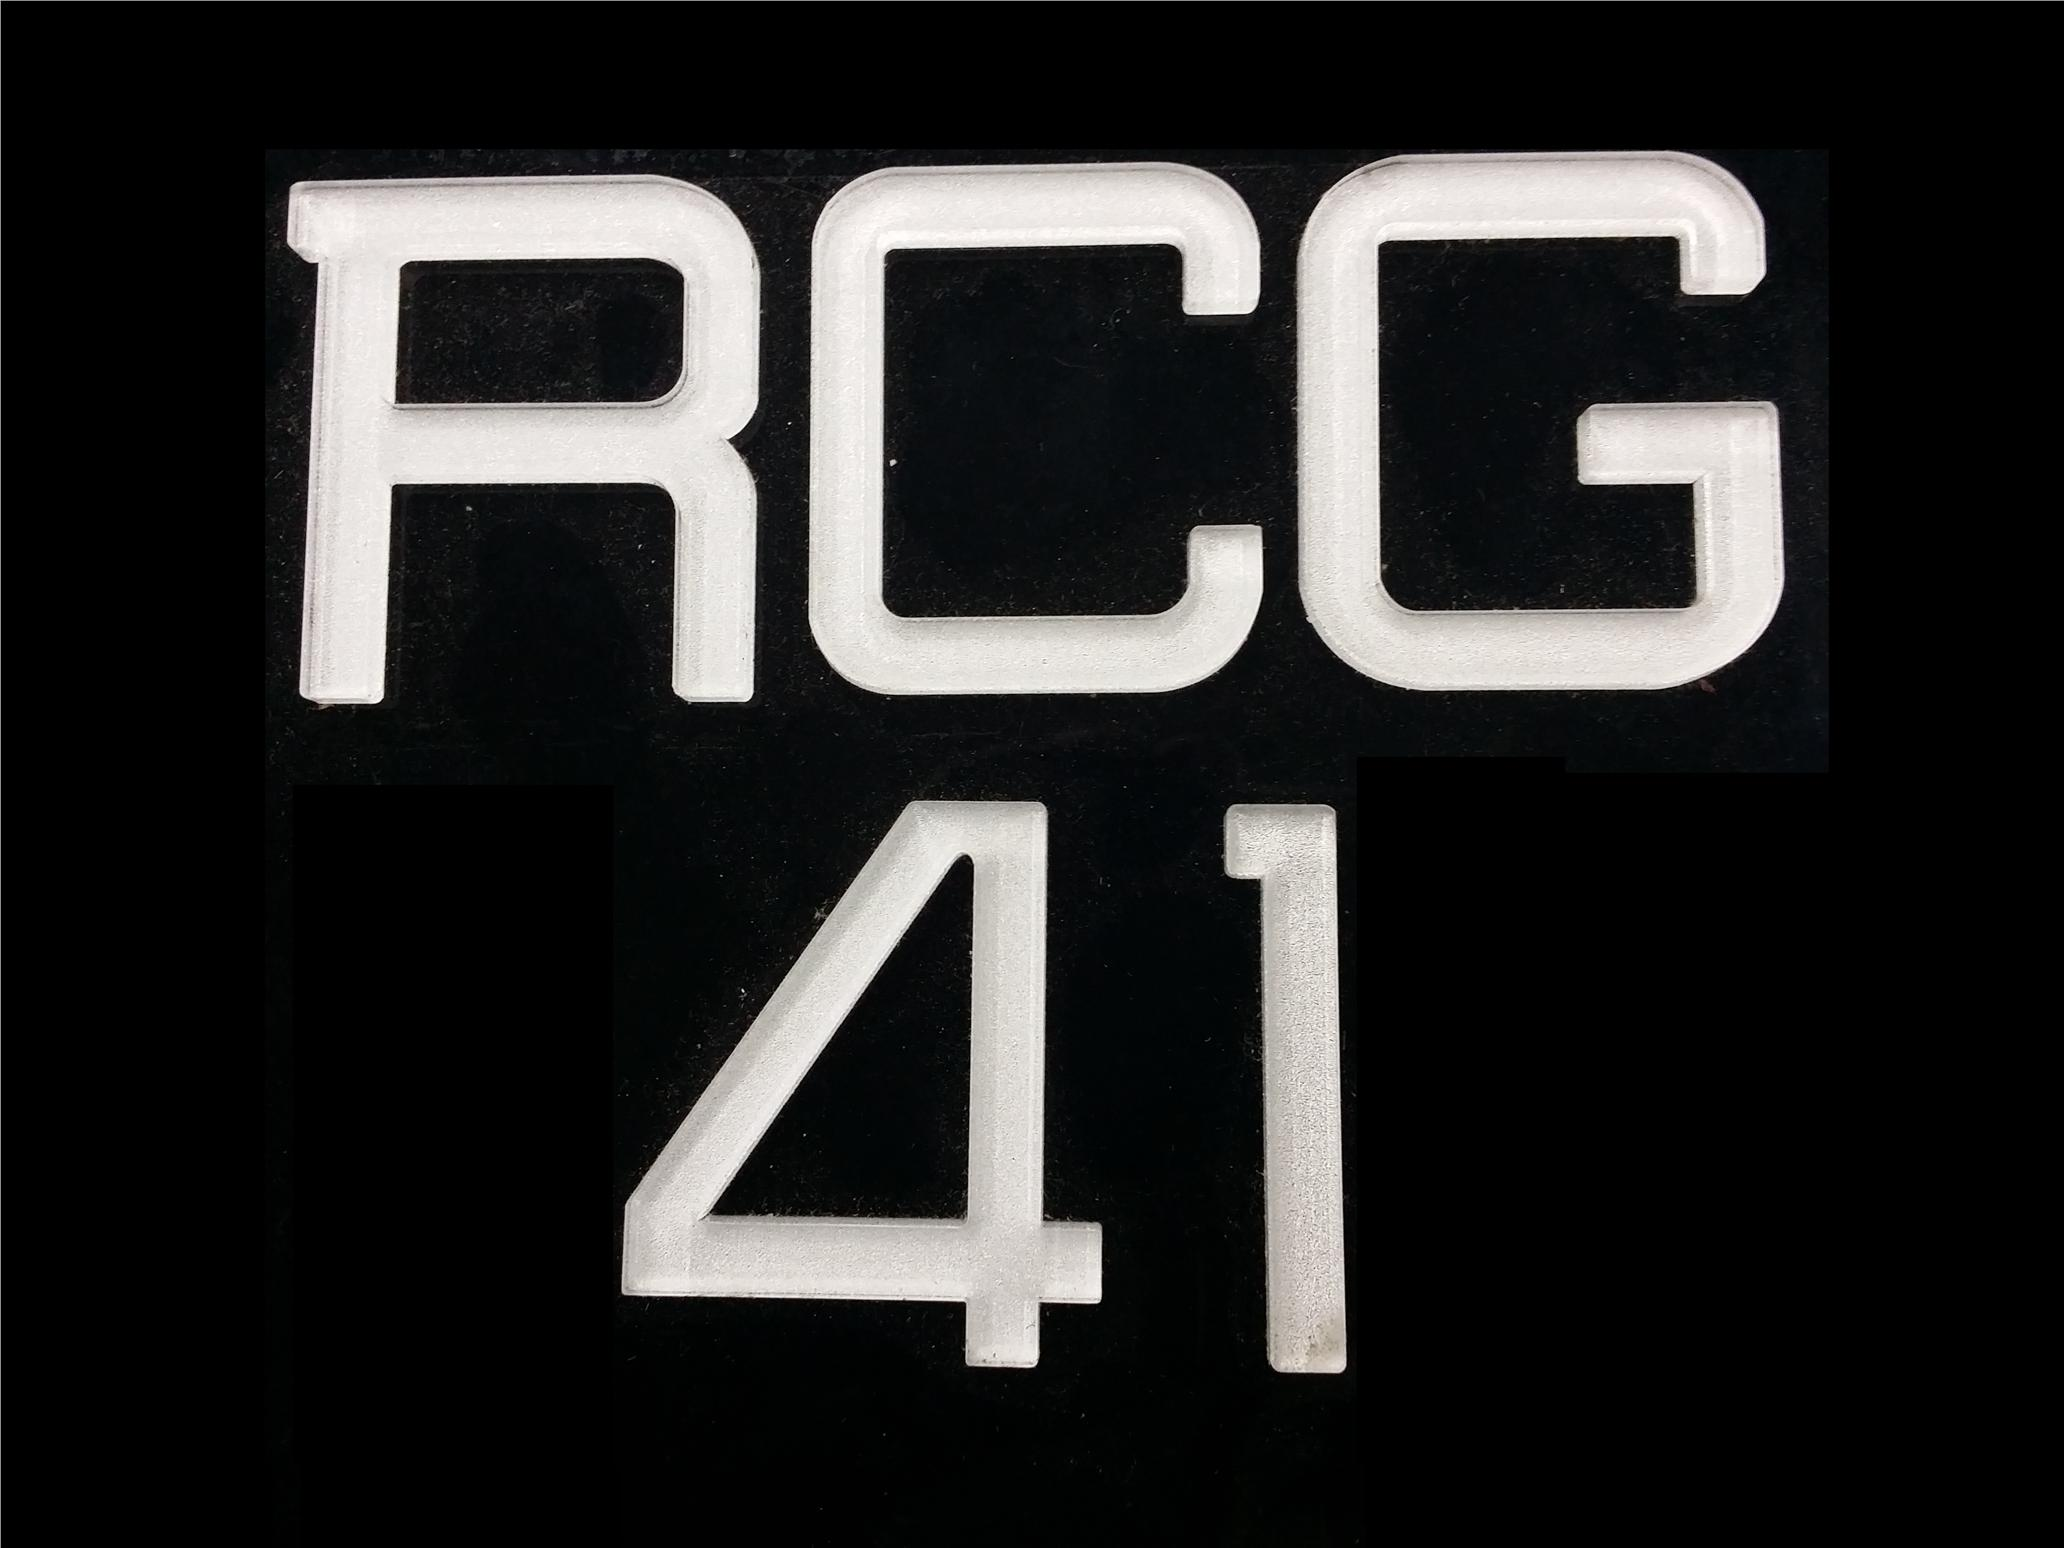 RCG FONT CRYSTAL ACRYLIC CAR NUMBER PLATE SET 2 - 7 ALPHABET